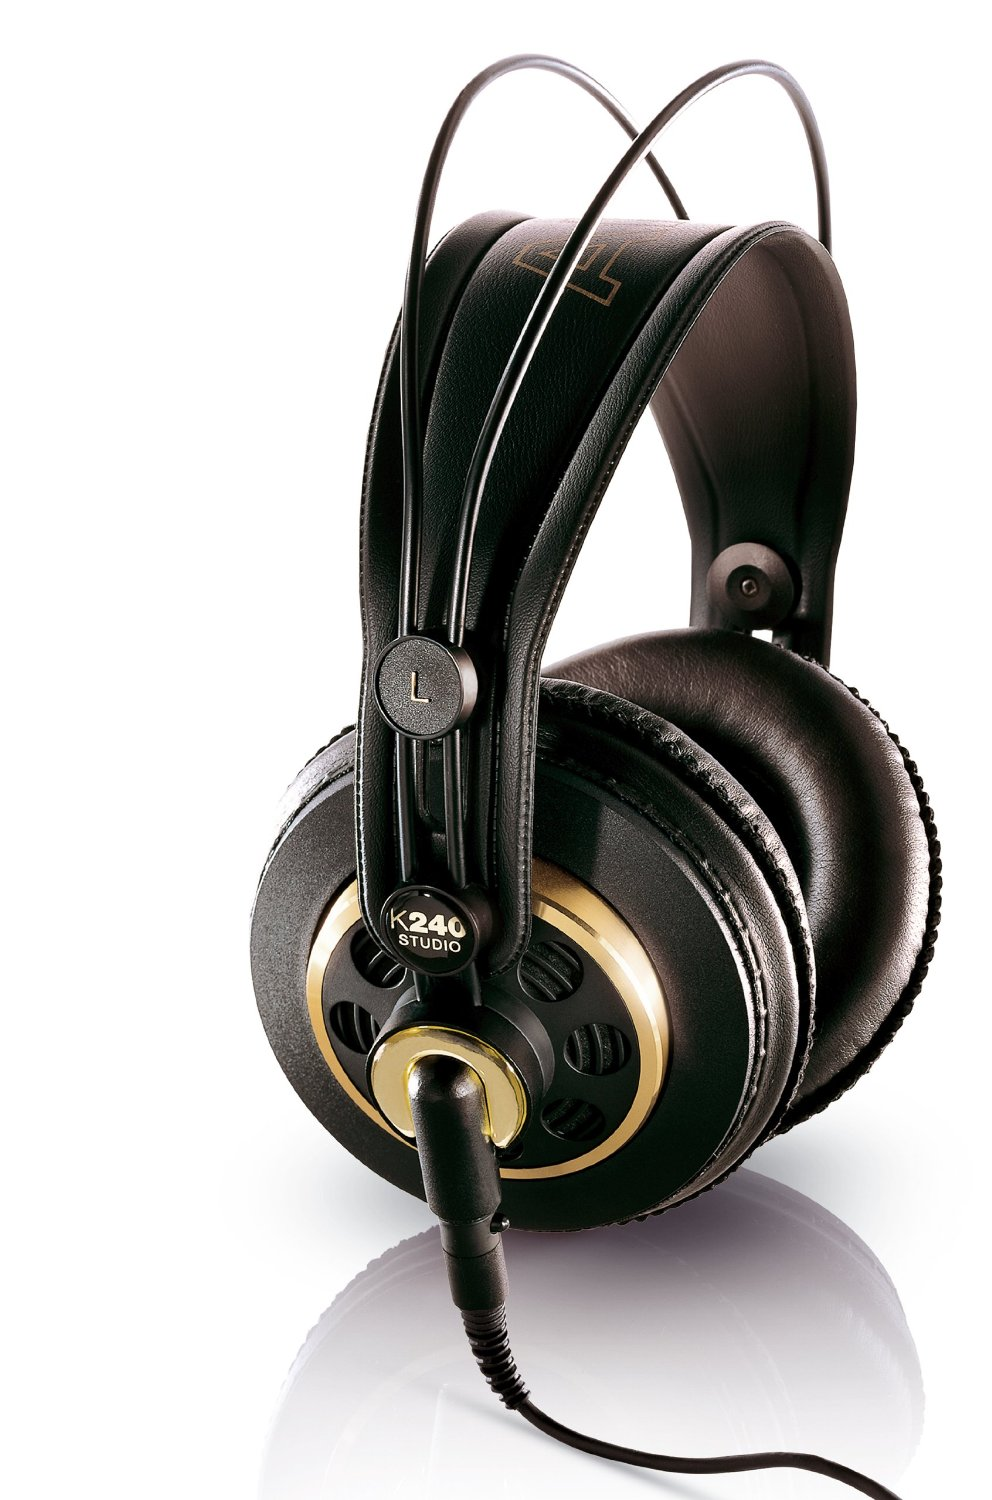 akg k240 headphones on budget